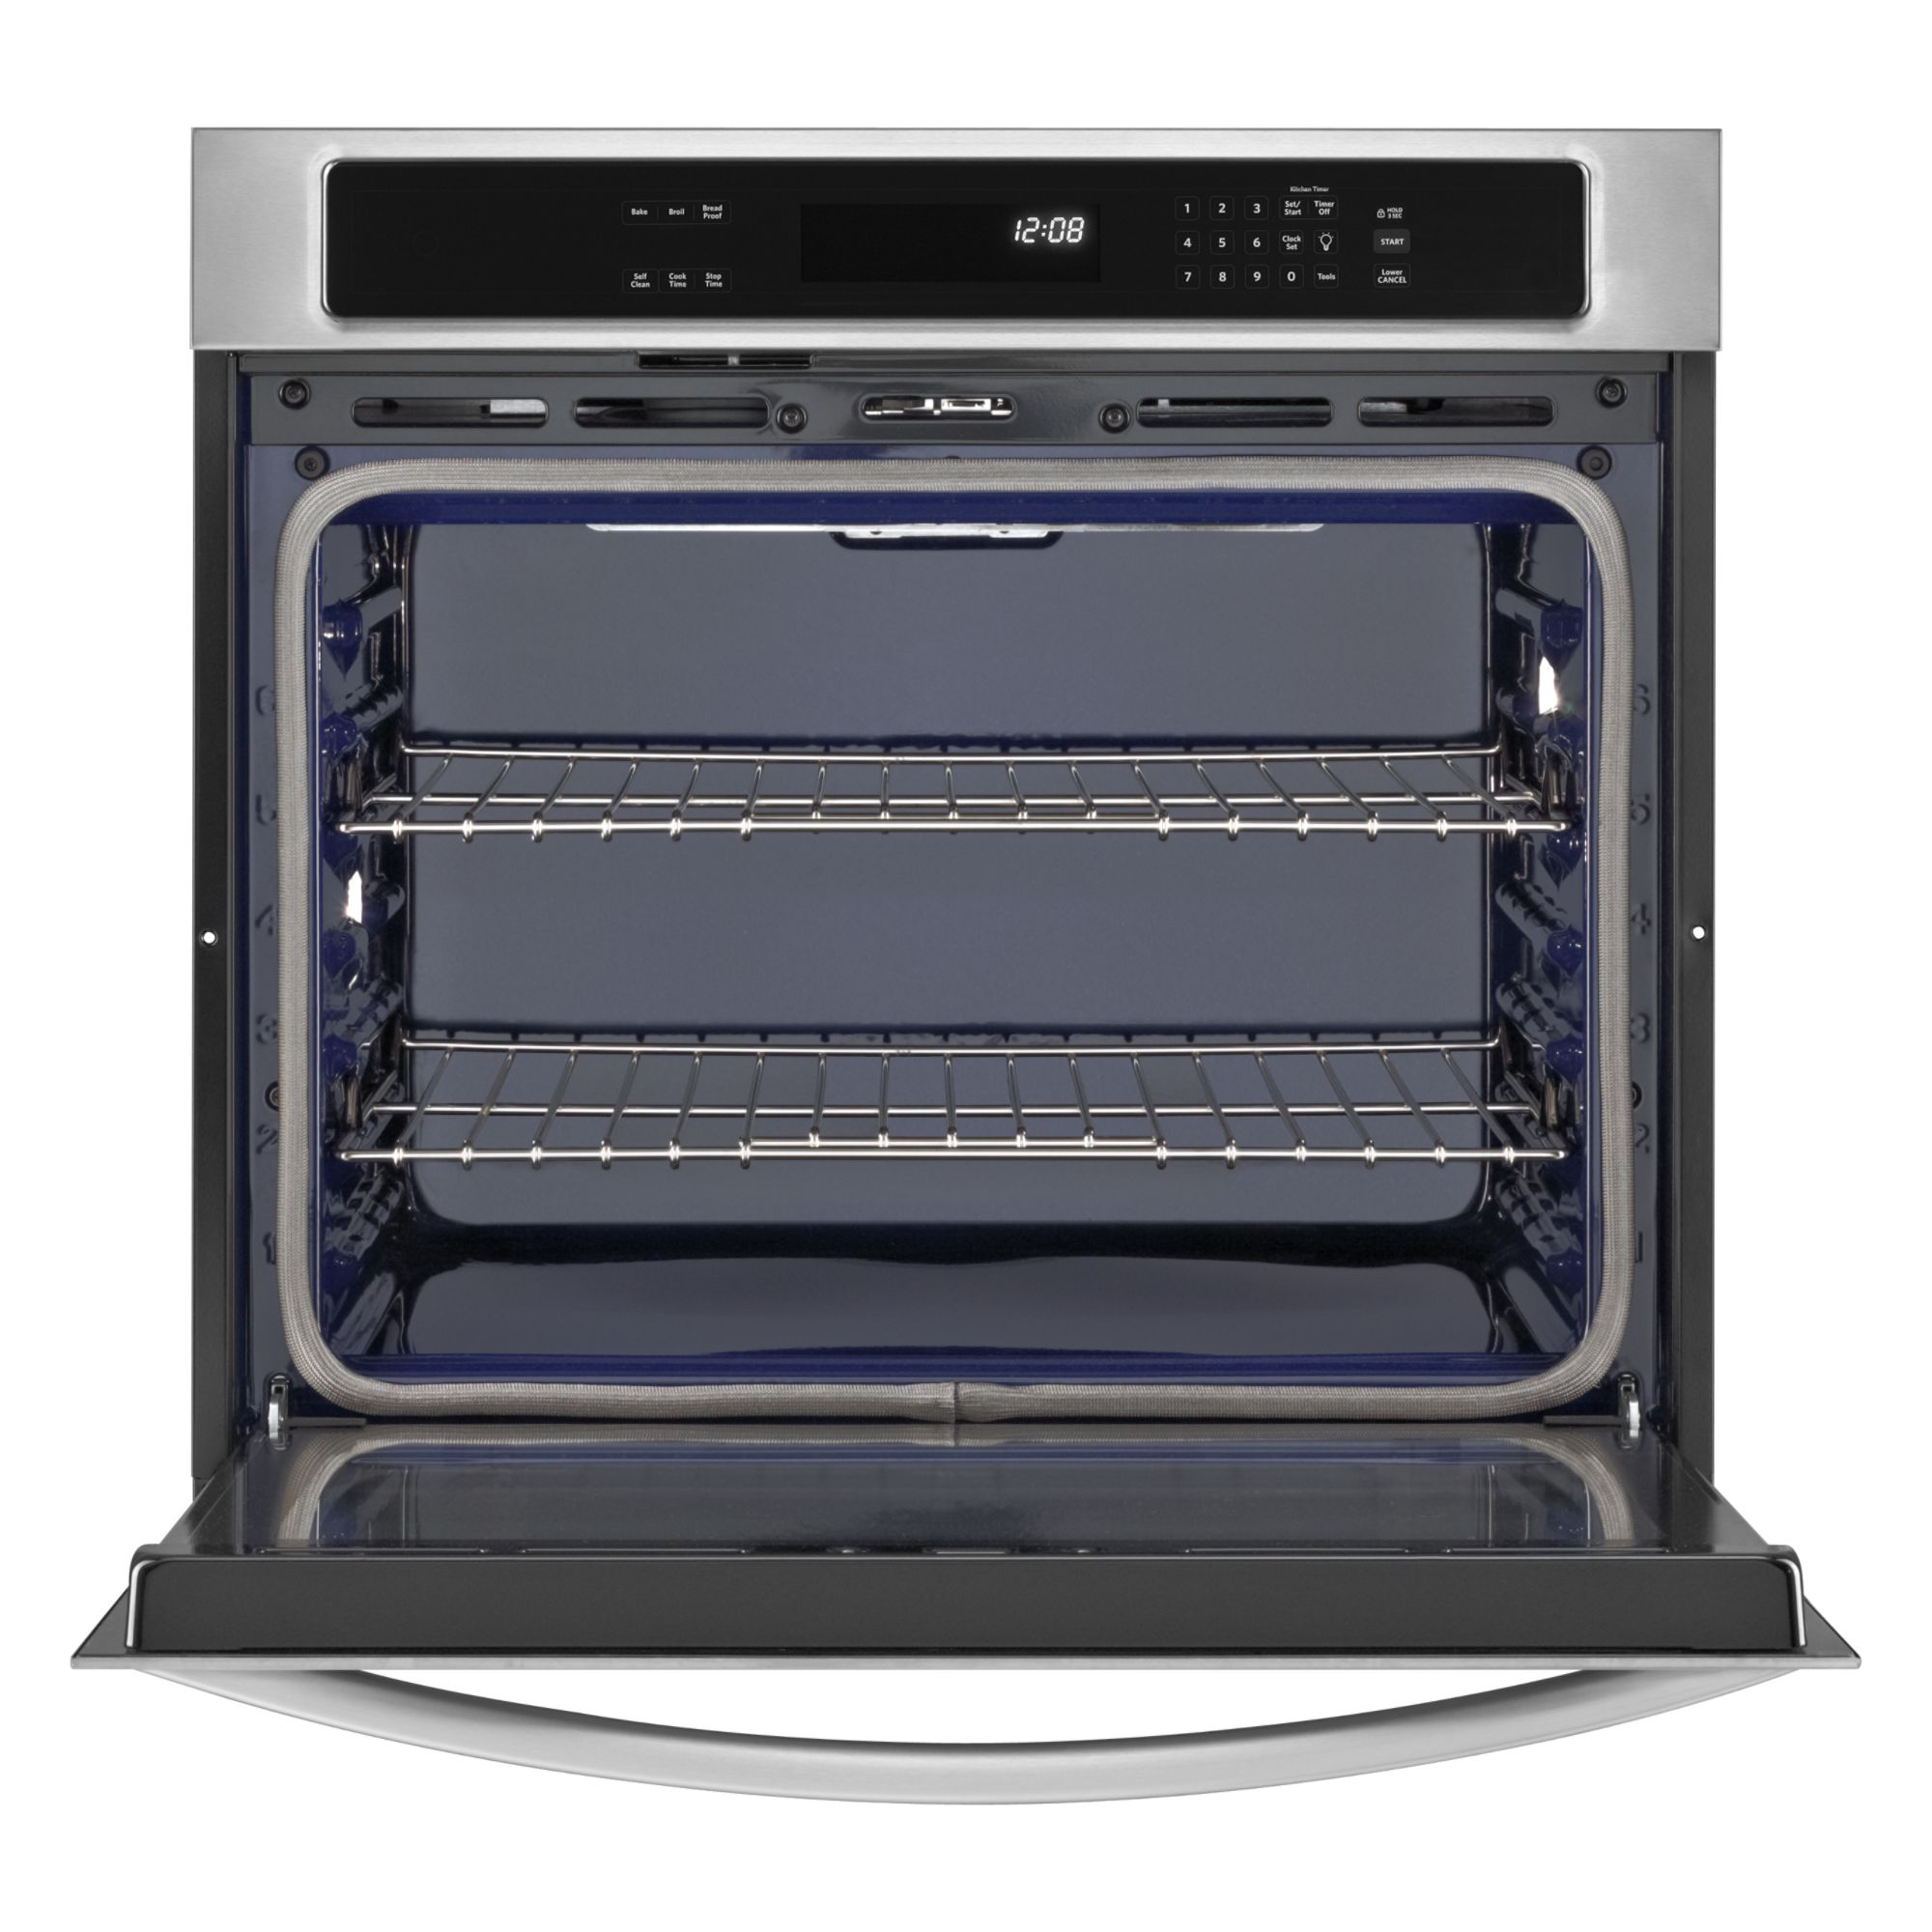 KitchenAid 27-inch Built-in Single Wall Oven with Even-Heat™ Technology - Stainless Steel